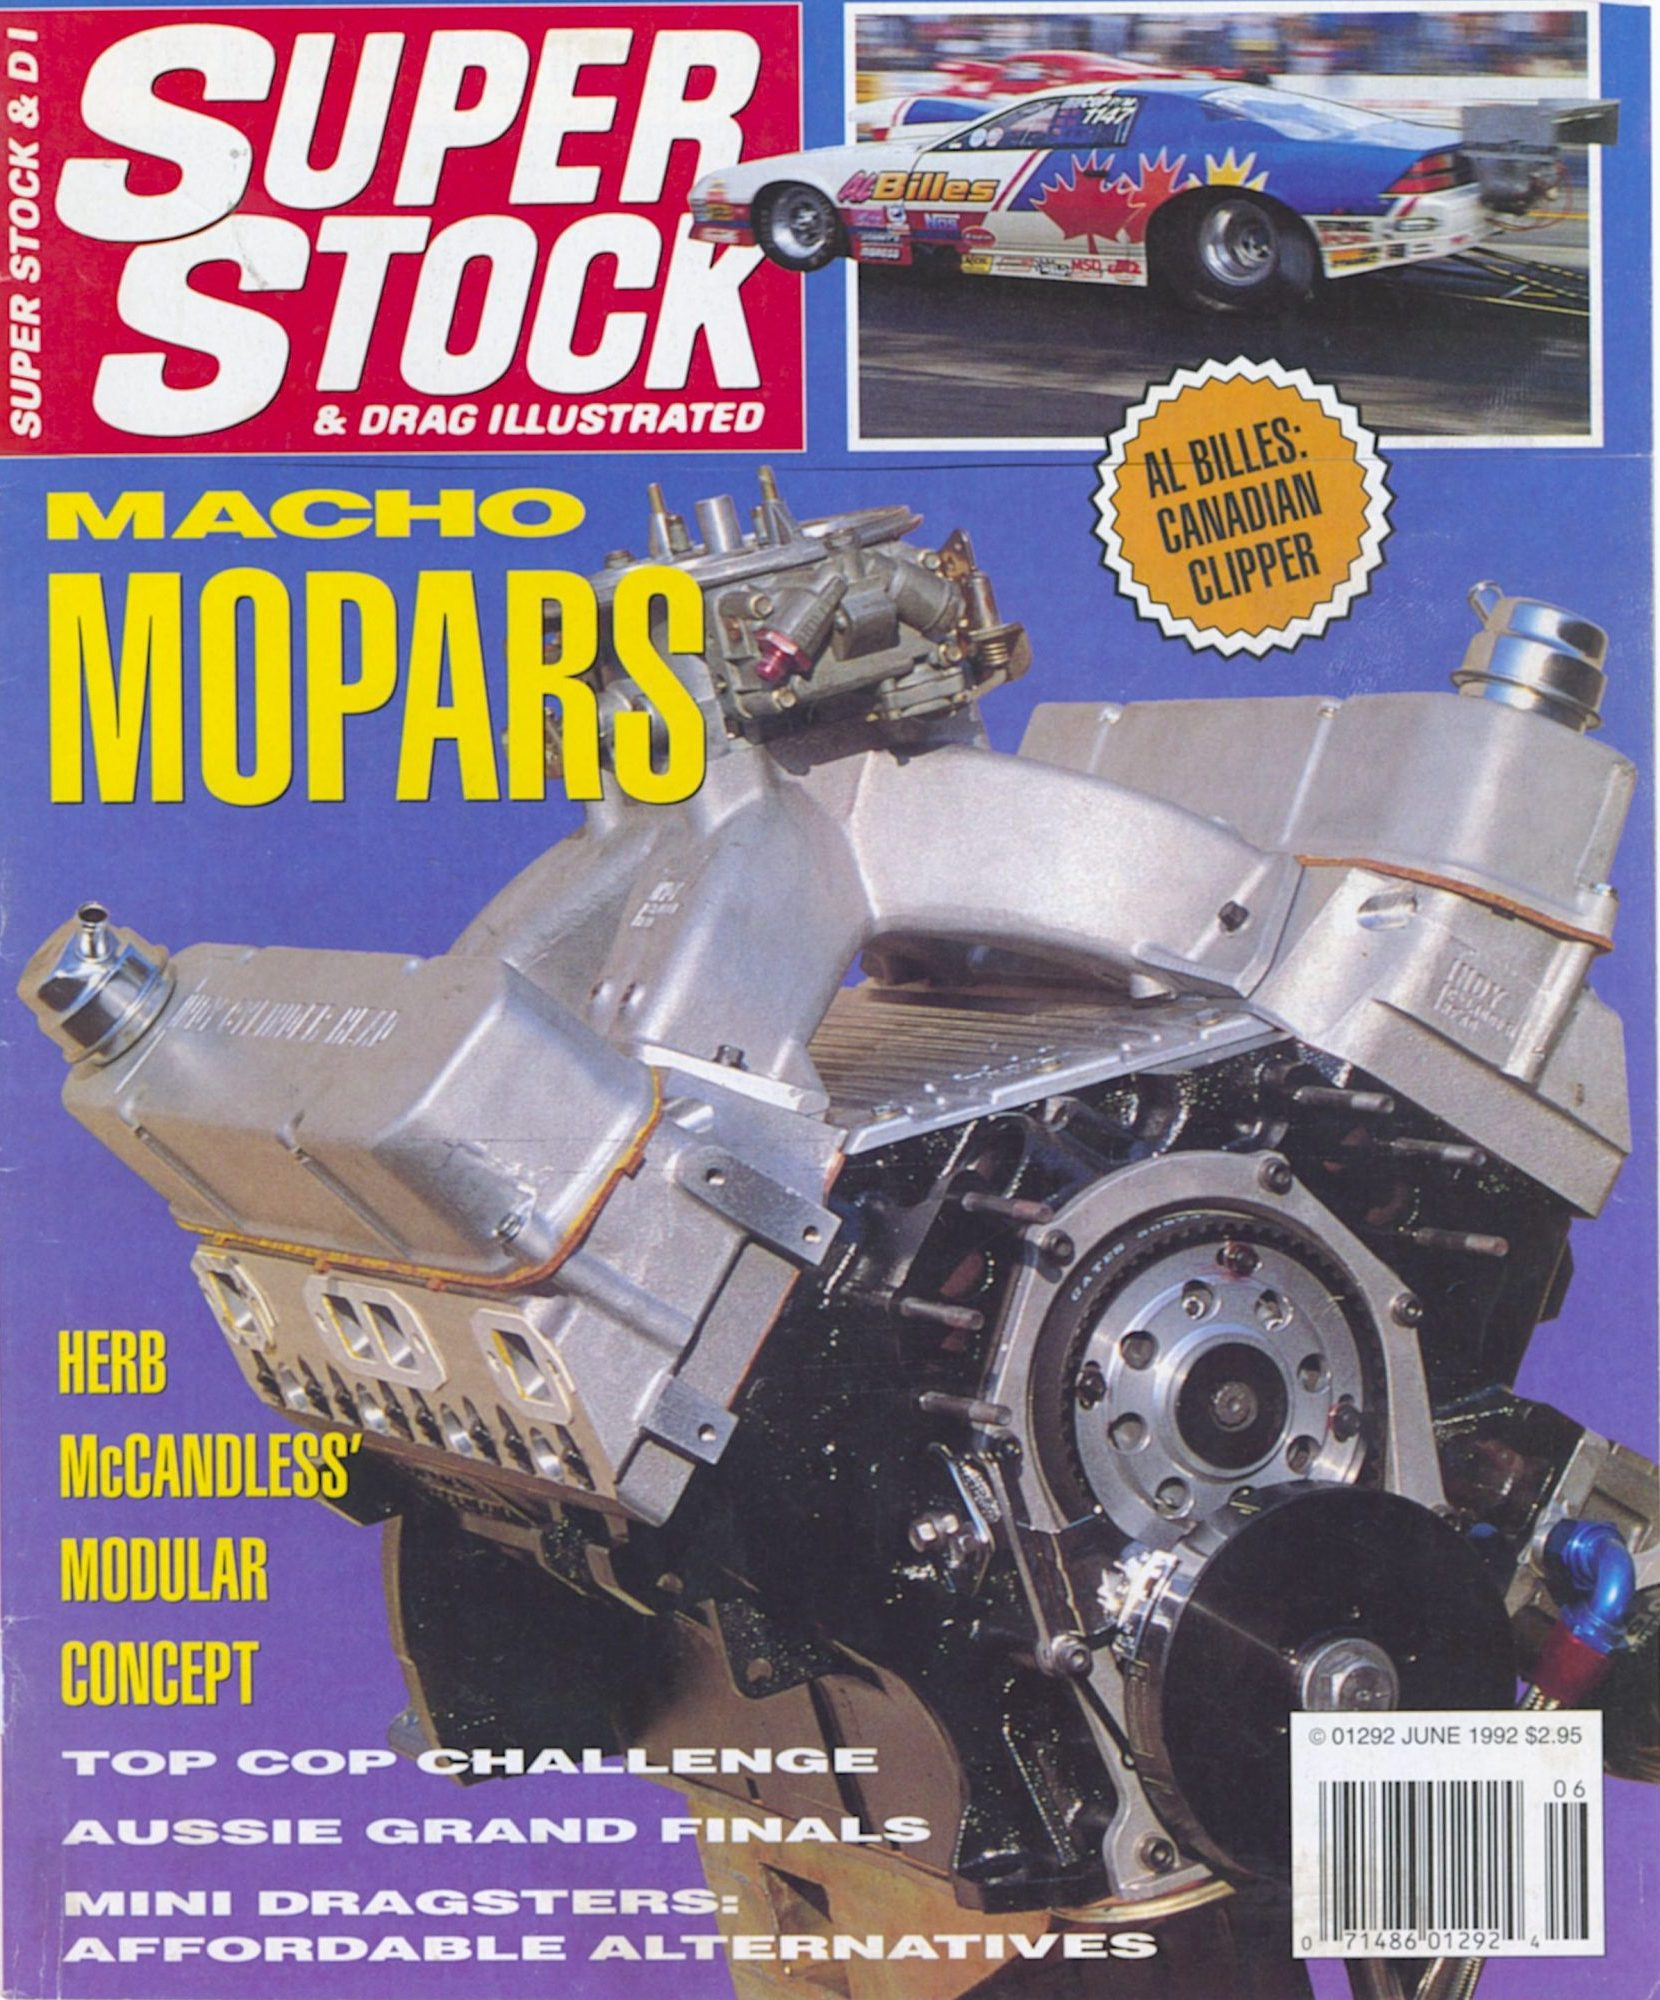 Herb McCandless racing on front cover of Super Stock and Drag Illustrated magazine